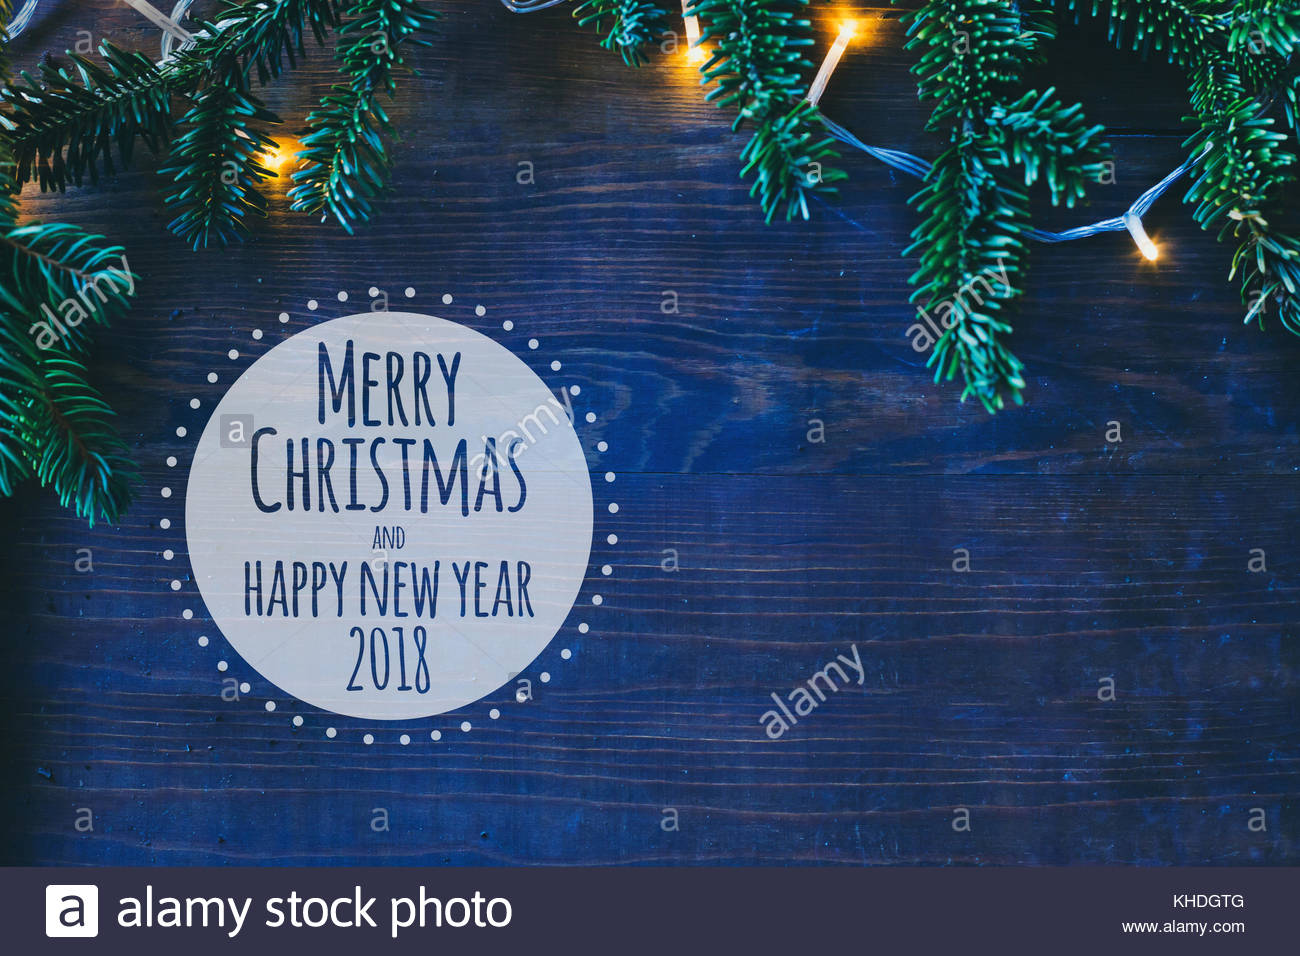 Merry Christmas and Happy New Year 2018 greeting card with copy ...